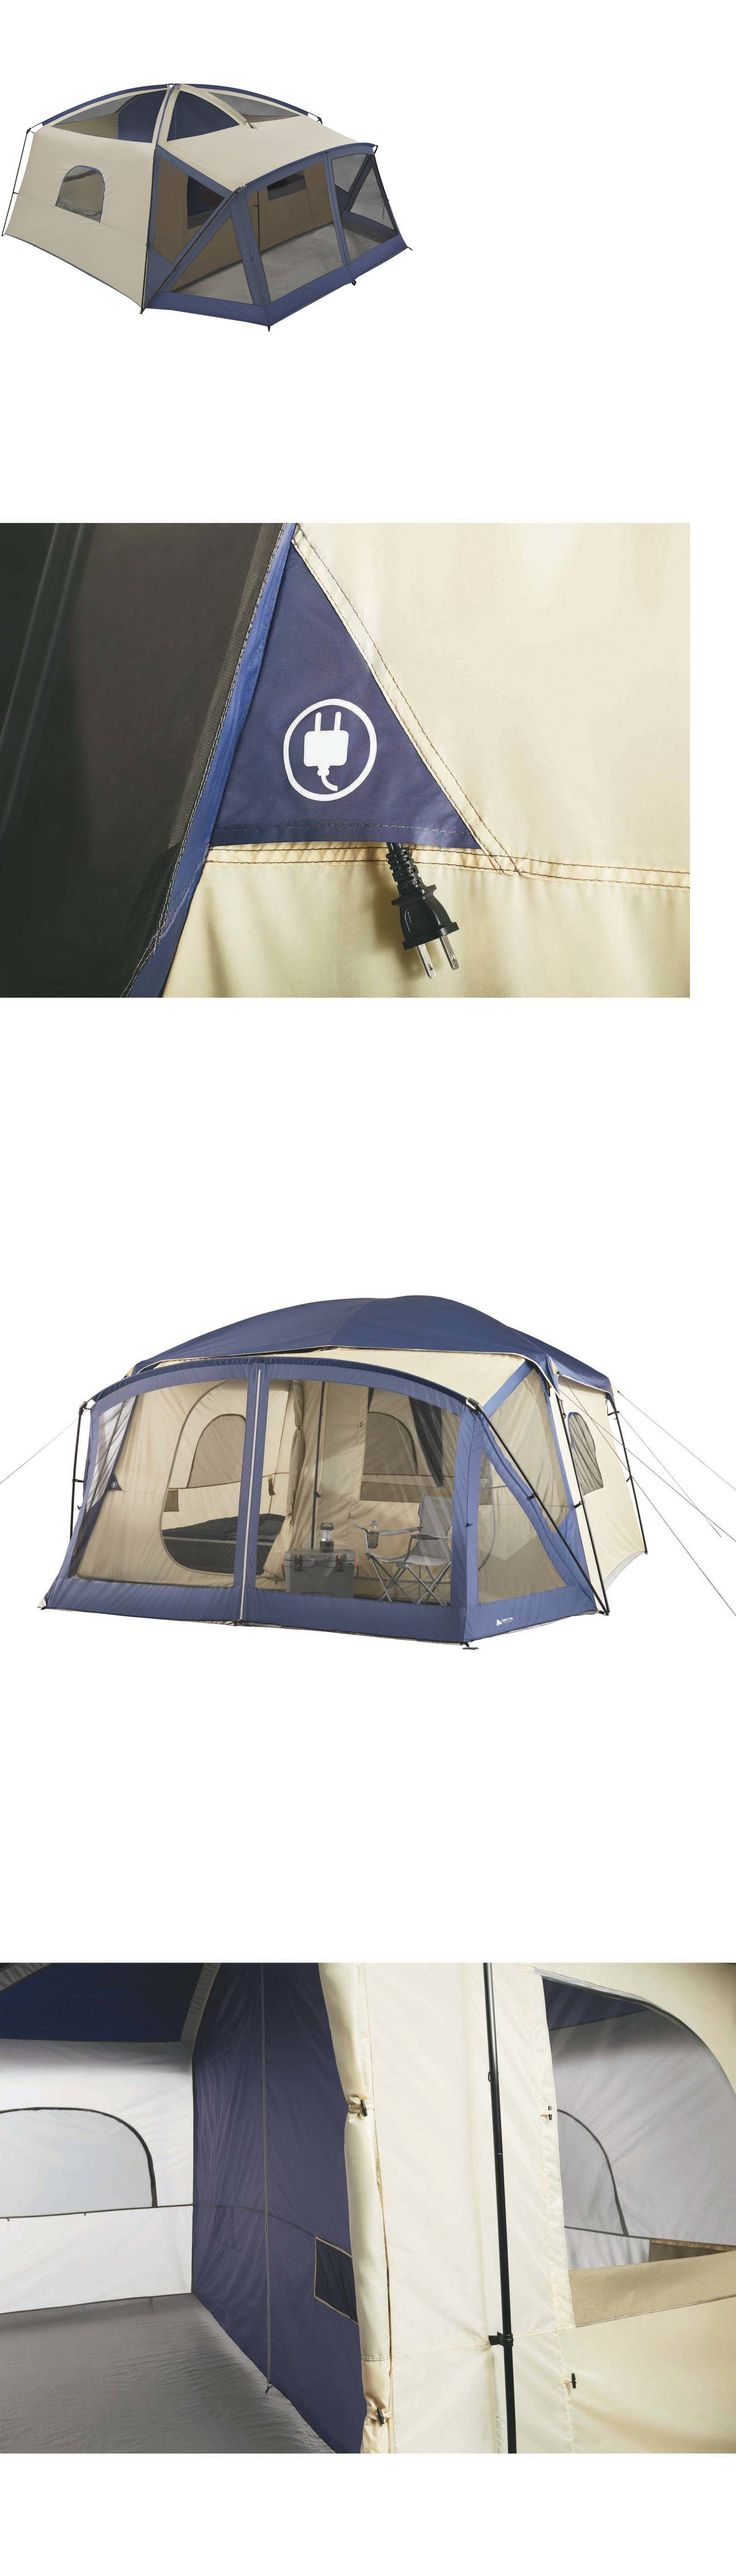 Tents 179010: 12 Person Cabin Tent Camping Family Outdoor Instant Tents Trail 2 Room New -> BUY IT NOW ONLY: $193.15 on eBay!